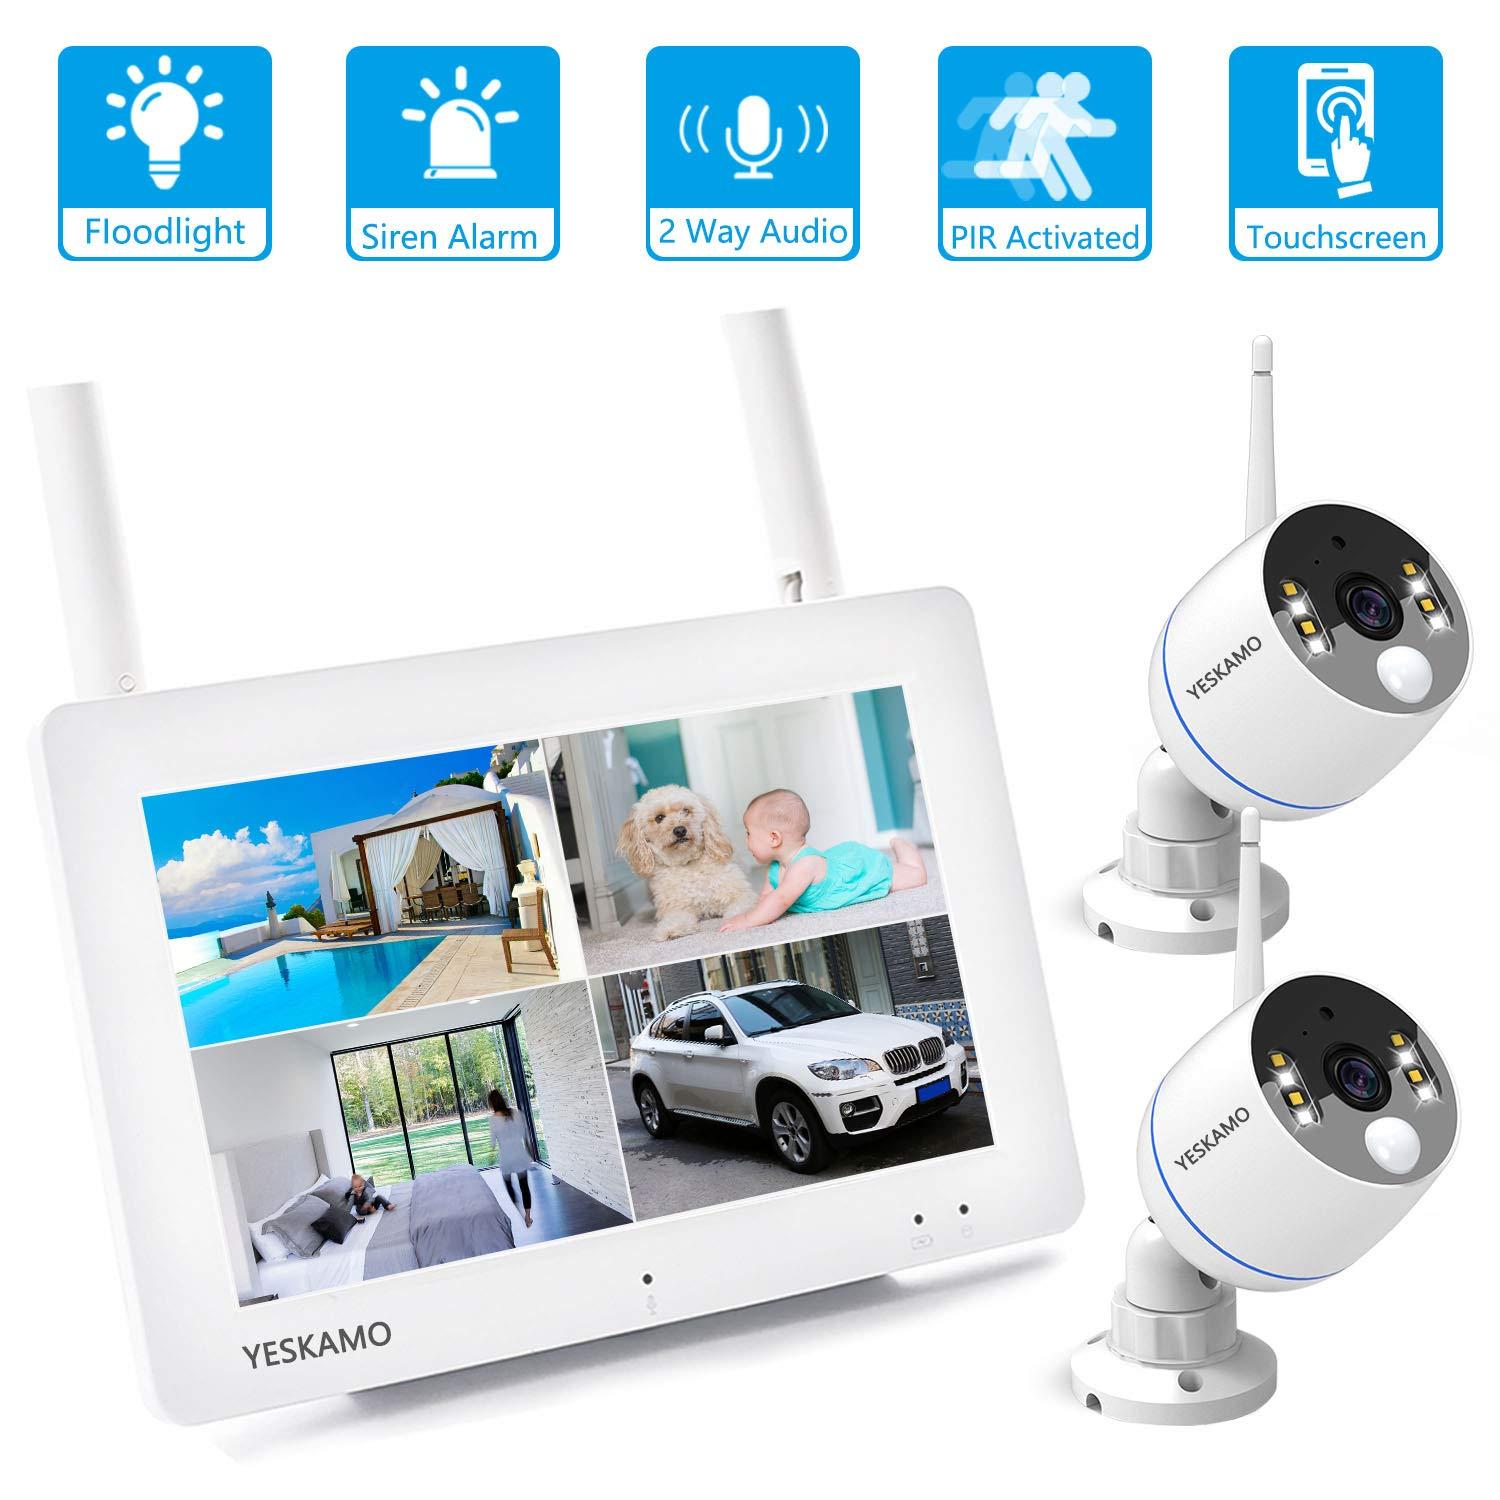 Floodlight Camera Security System Wireless Outdoor with 7'' Portable Touchscreen Monitor 2Pcs 1080P Floodlight WiFi IP Camera for House Security, YESKAMO Home Video Surveillance, Two Way Audio by YESKAMO